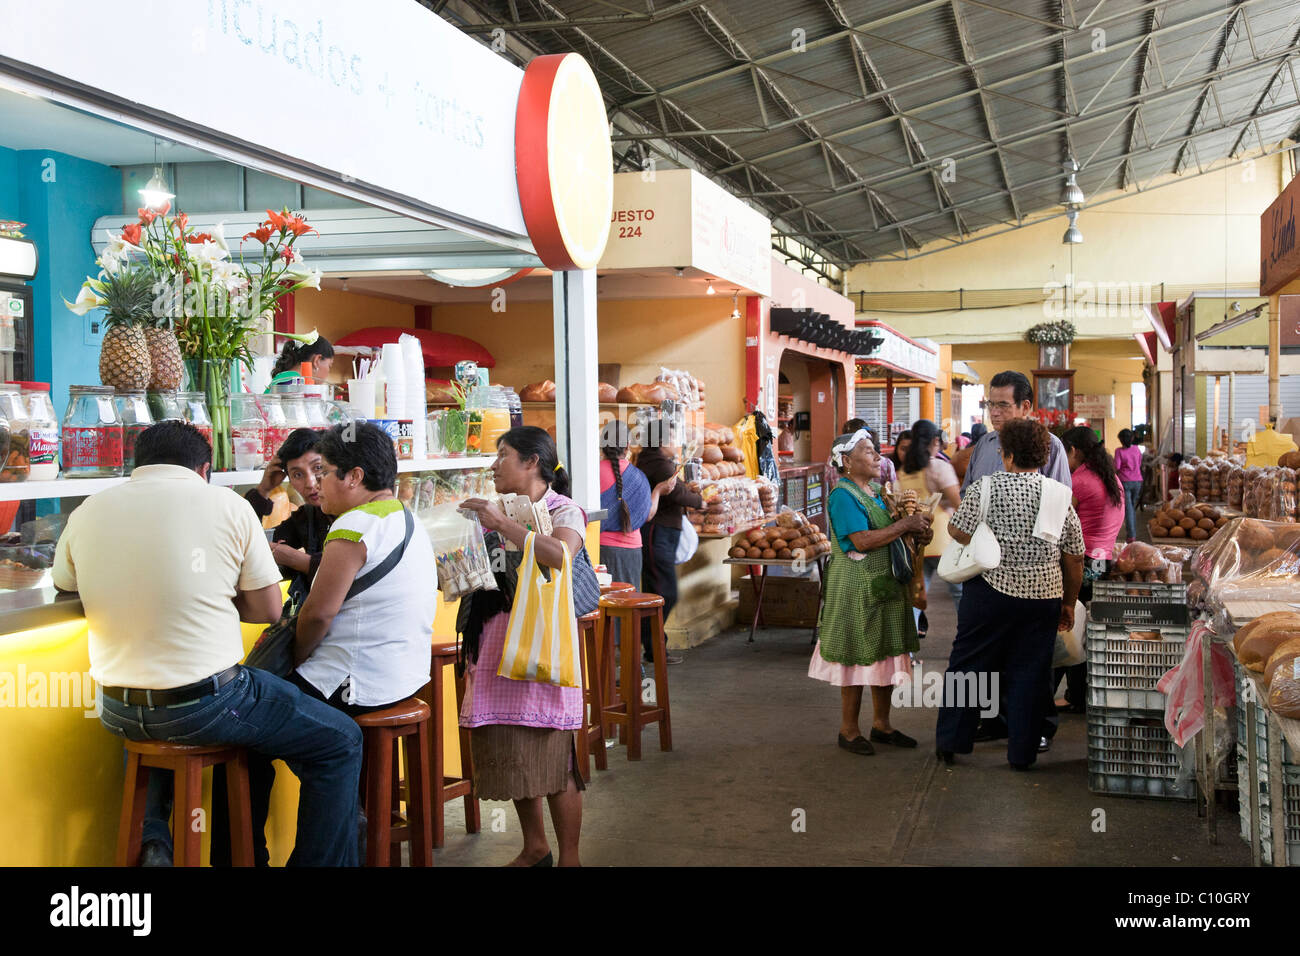 general view 20th November market with indigenous women vendors plying trade among customers shopping or eating - Stock Image